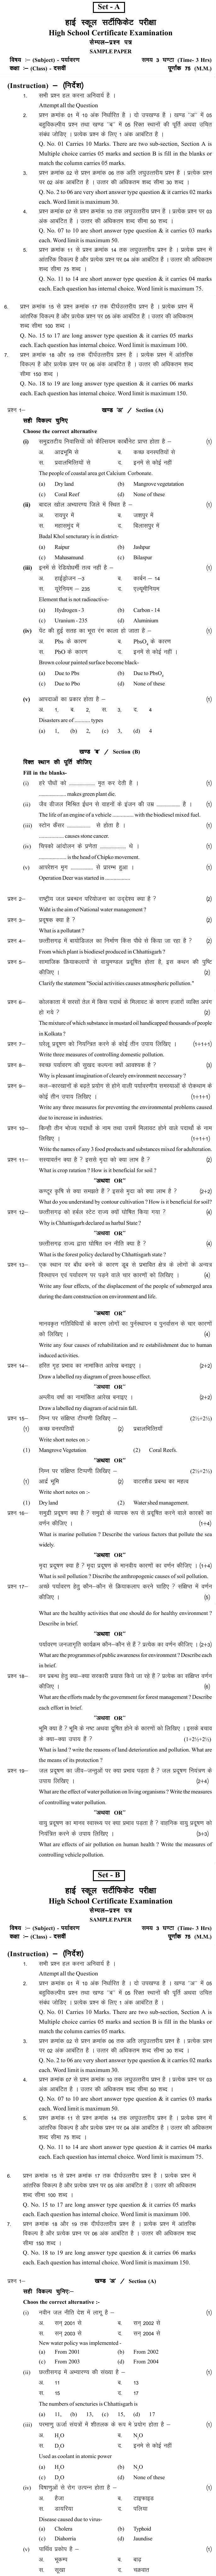 Chattisgarh Board Class 10 Environmental Sample Paper